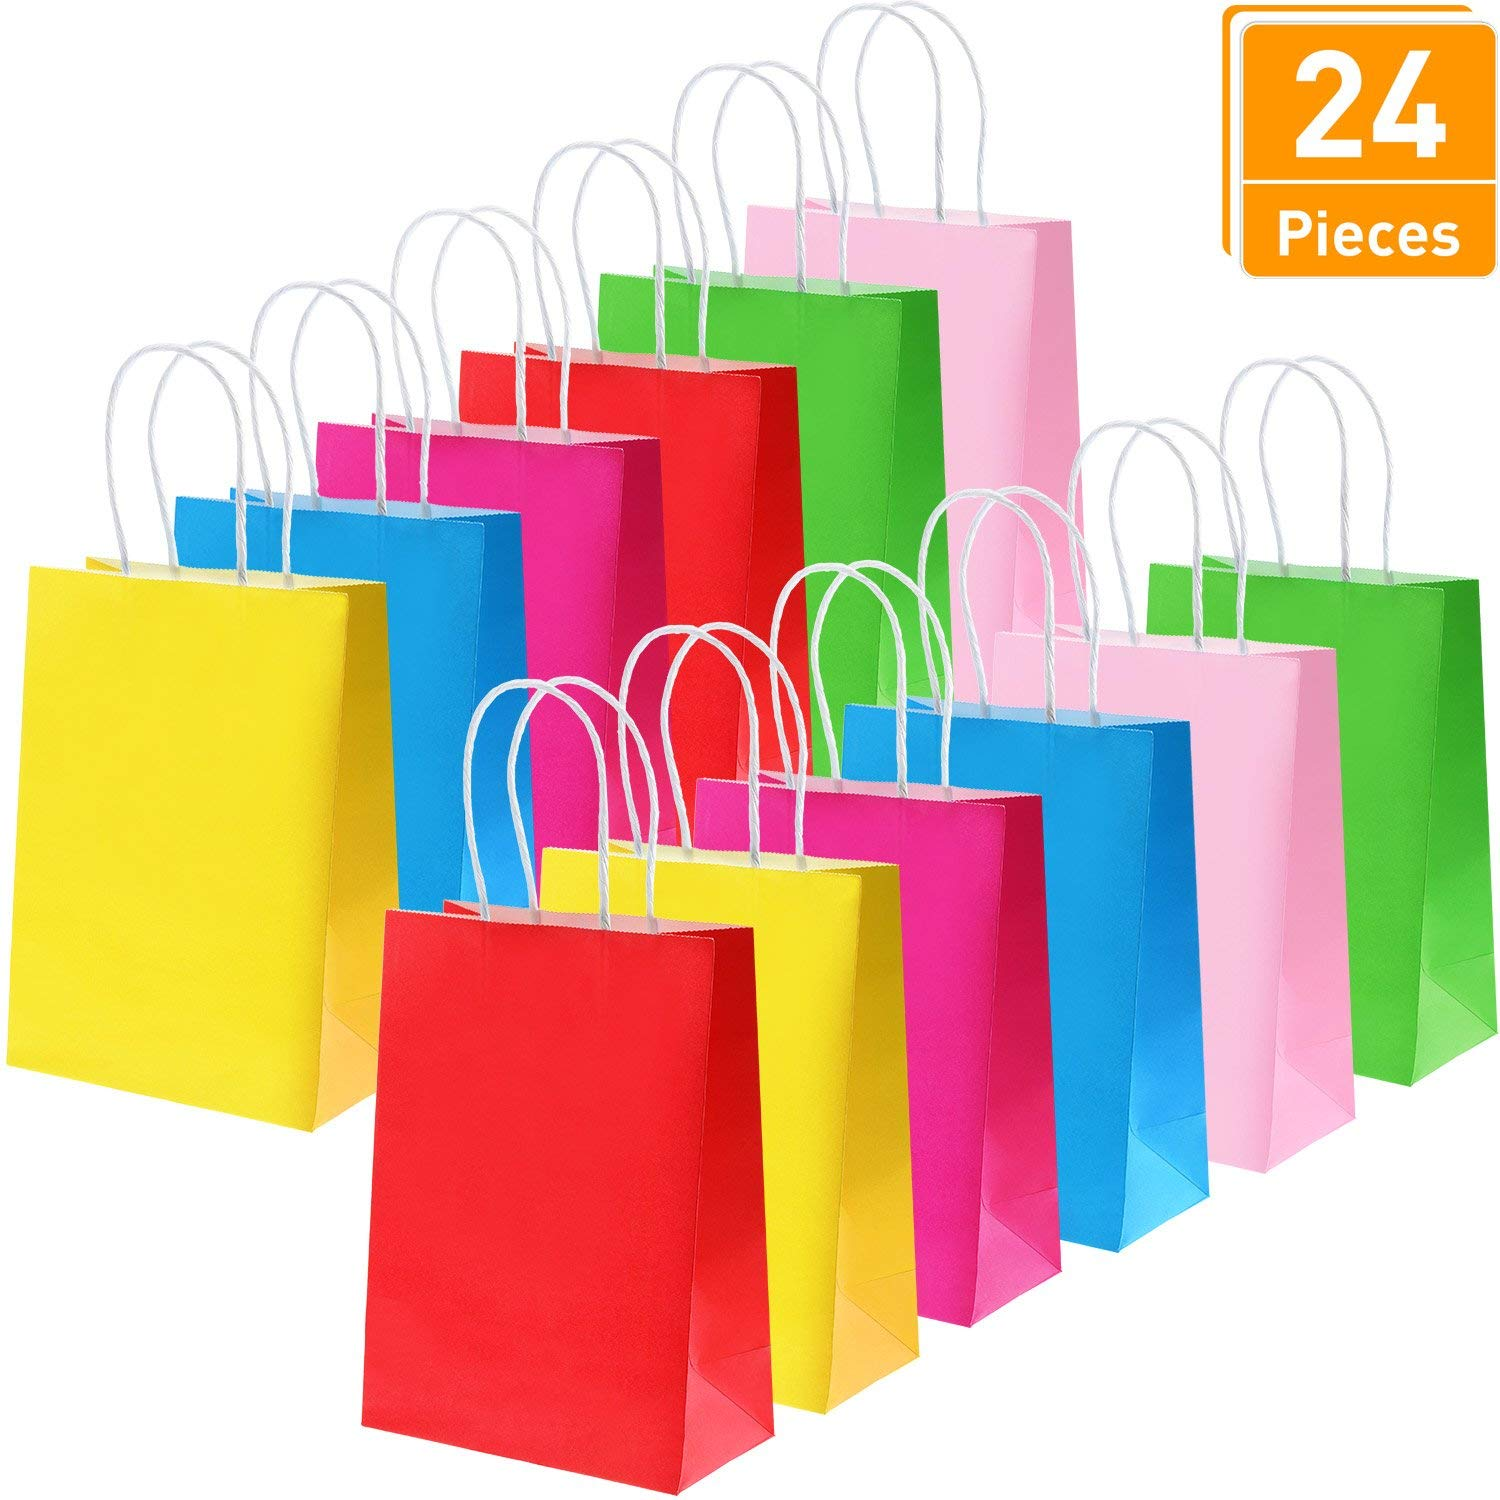 Tatuo 24 Pieces Paper Party Gift Bags Kraft Candy With Handle For Birthday Shopping Wedding Celebrations 6 Colors